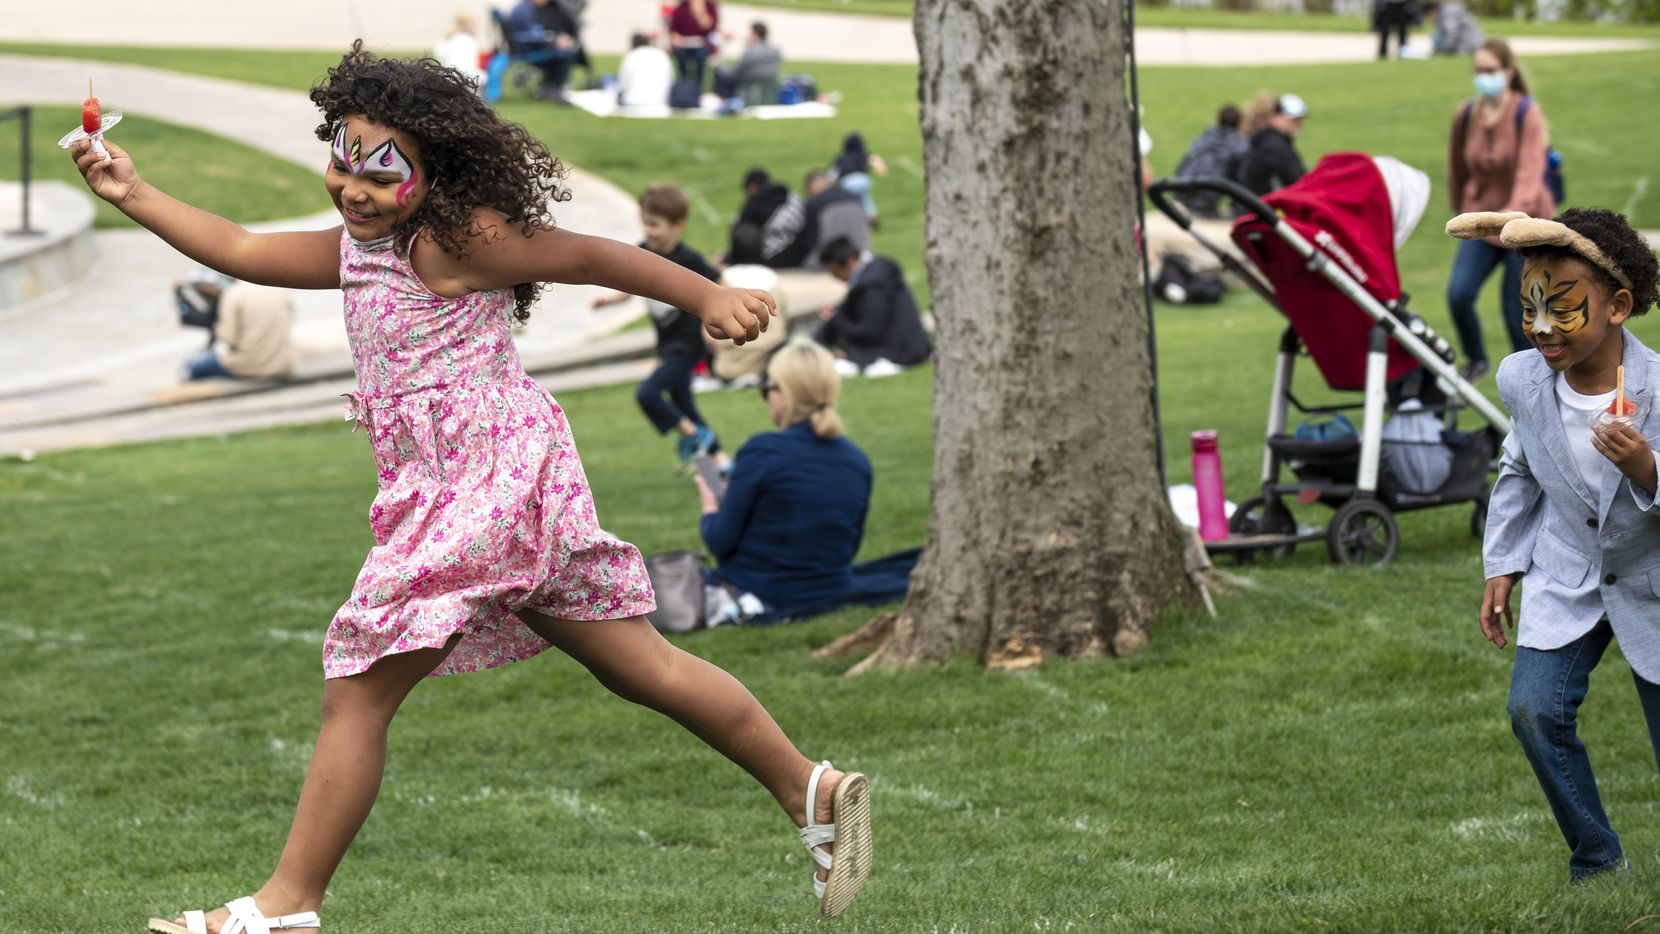 Isadora Peña, 6, runs freely while playing with her cousin Kaniel Williams, 5, of Austin, as her family visited with out-of-town relatives for Easter weekend at Dallas Arboretum, on Saturday, April 03, 2021 in Dallas.